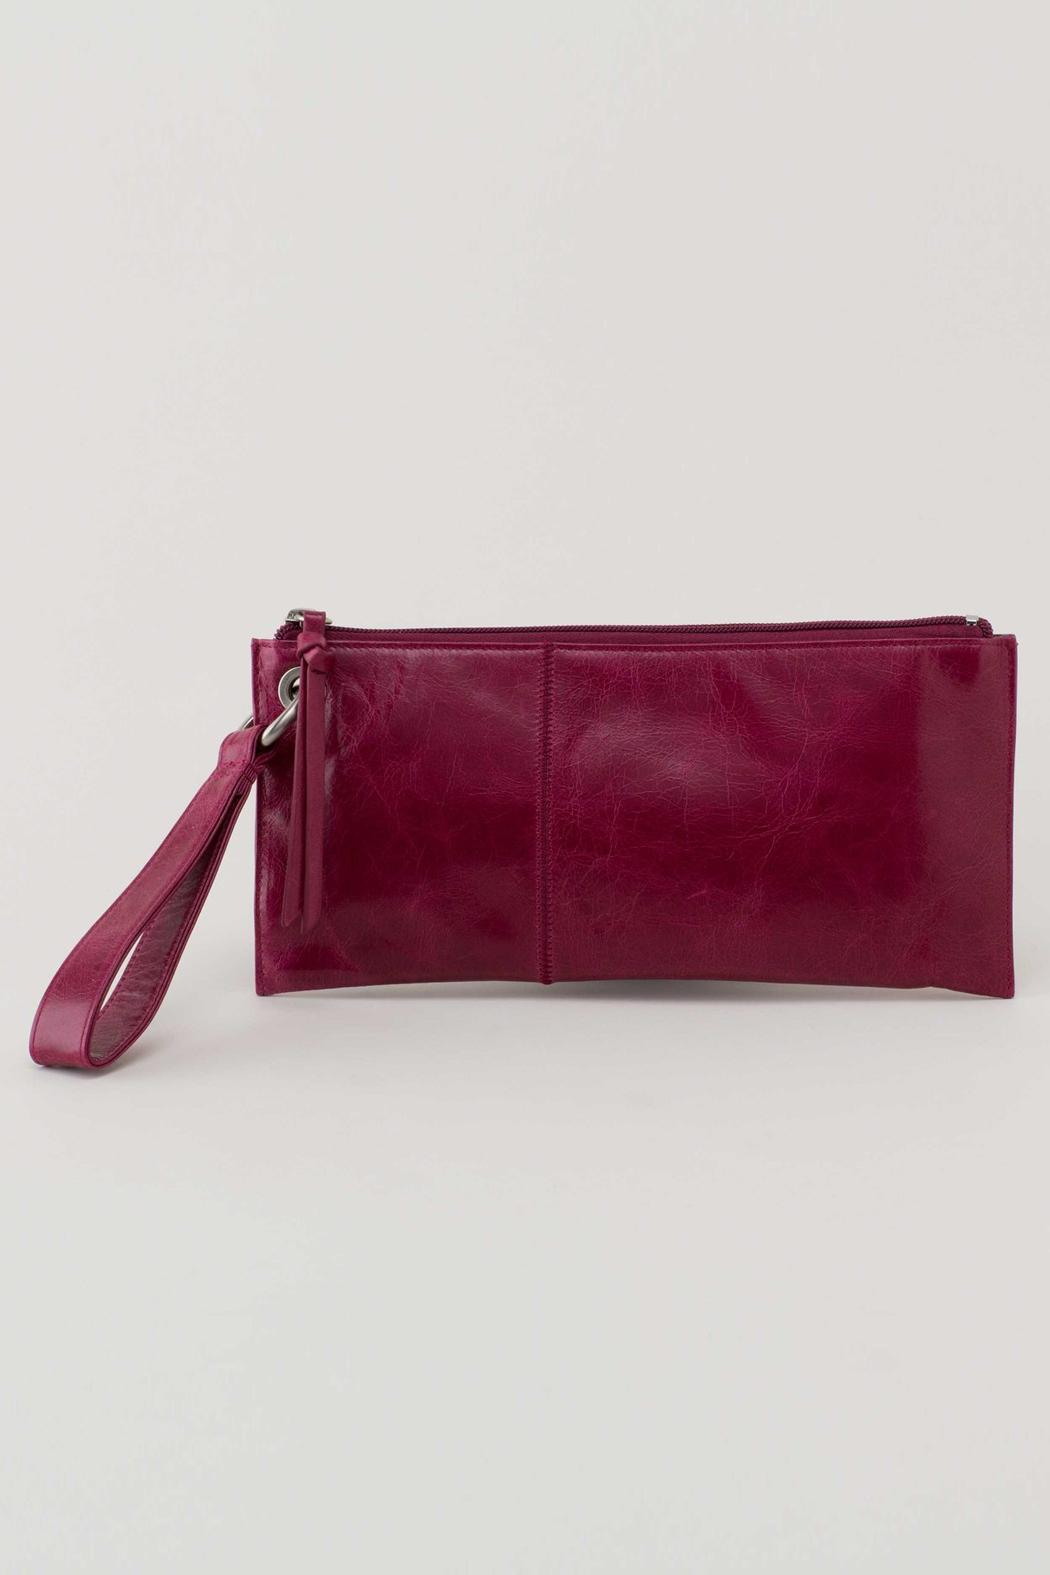 VIDA Leather Statement Clutch - Boho Spirit by VIDA kT2oDW0t